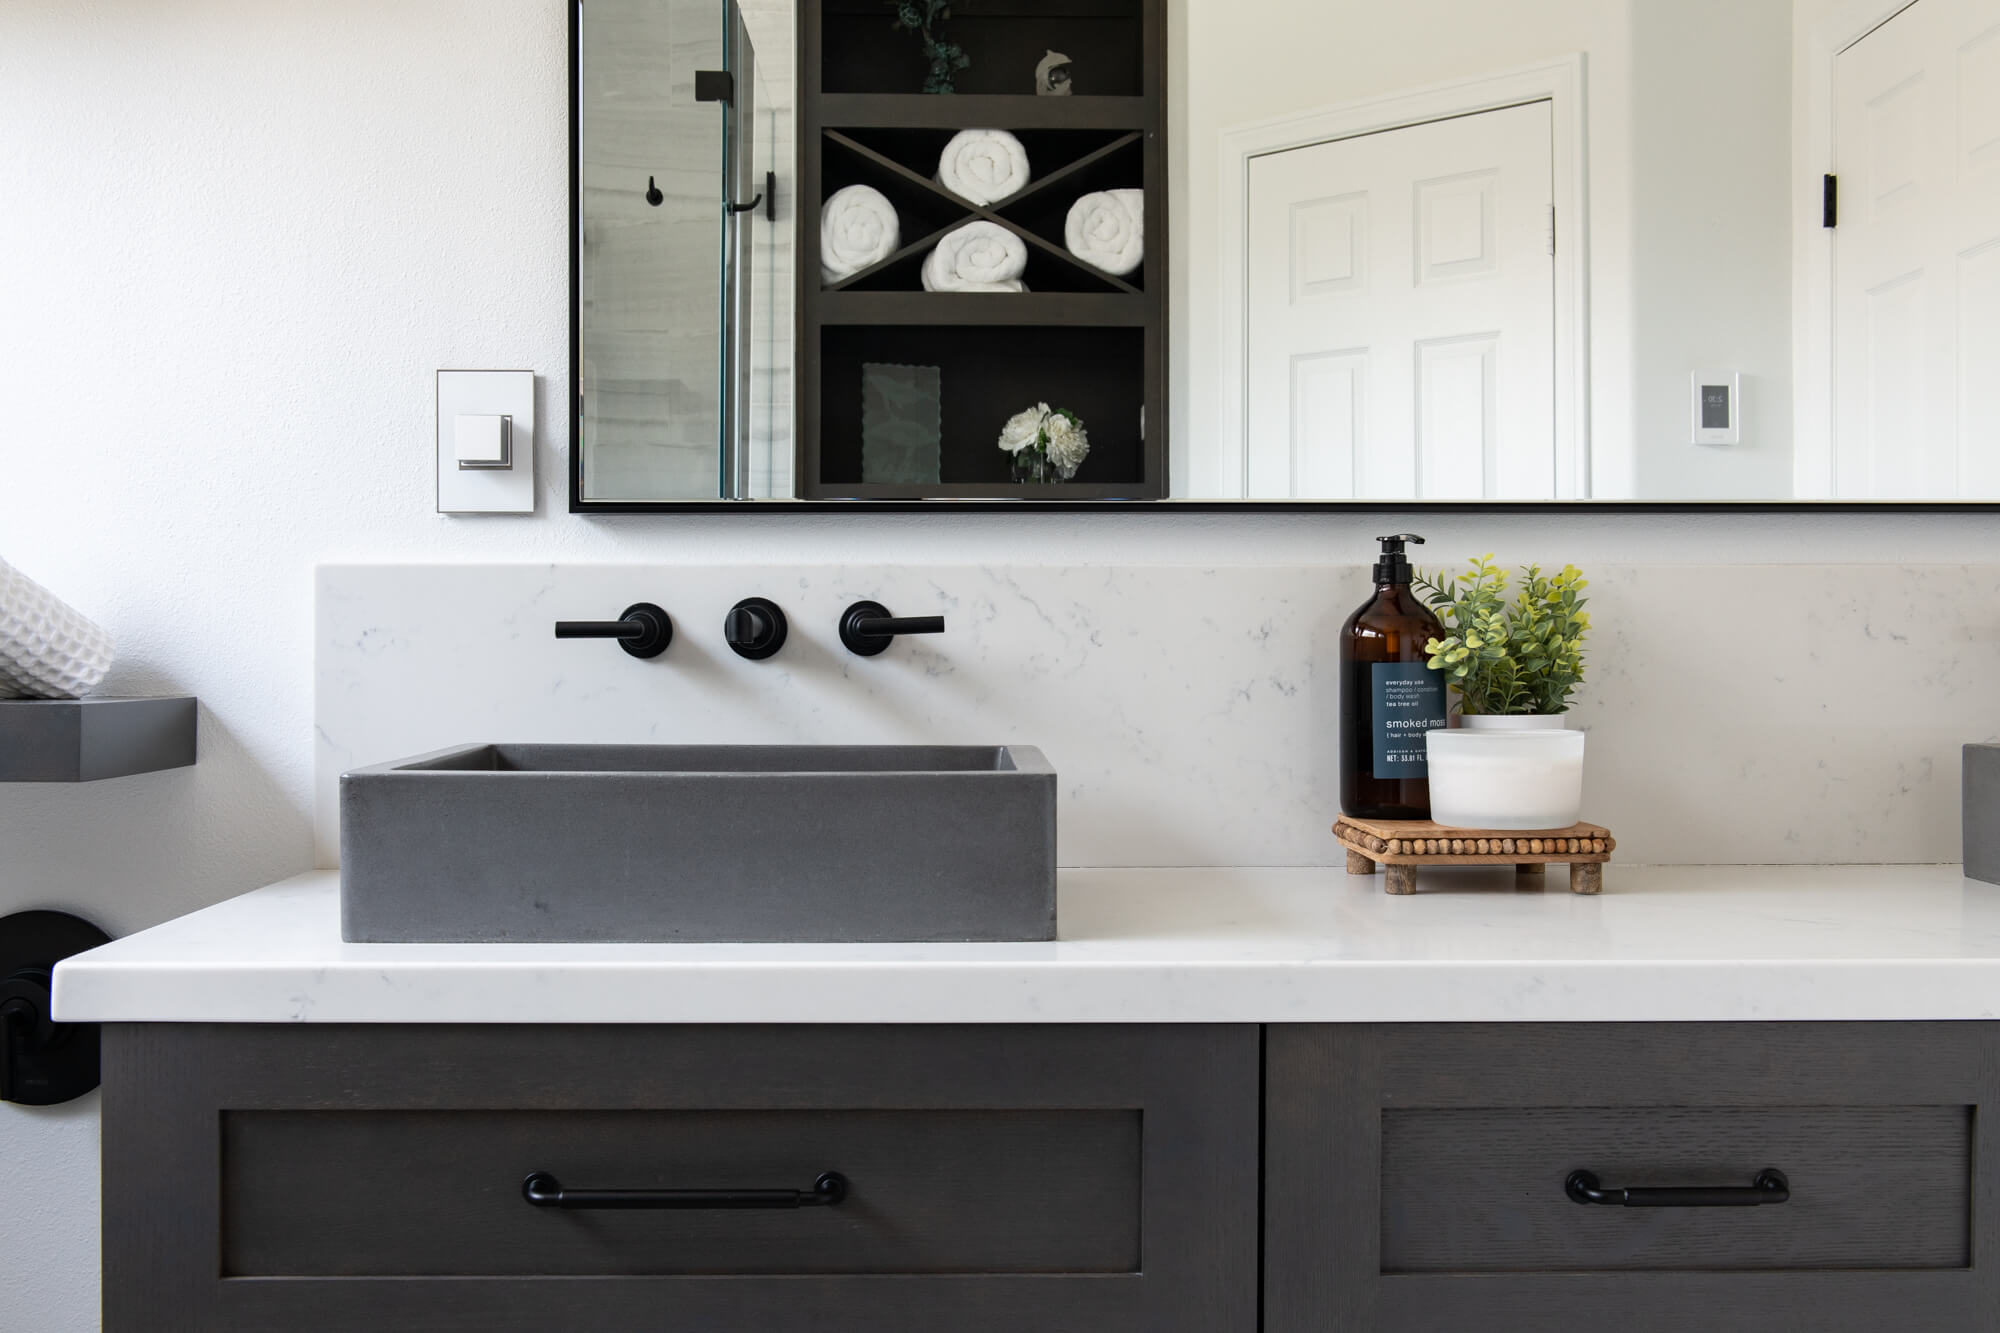 Convenient Pop Out Electrical Outlet in Bath Remodel